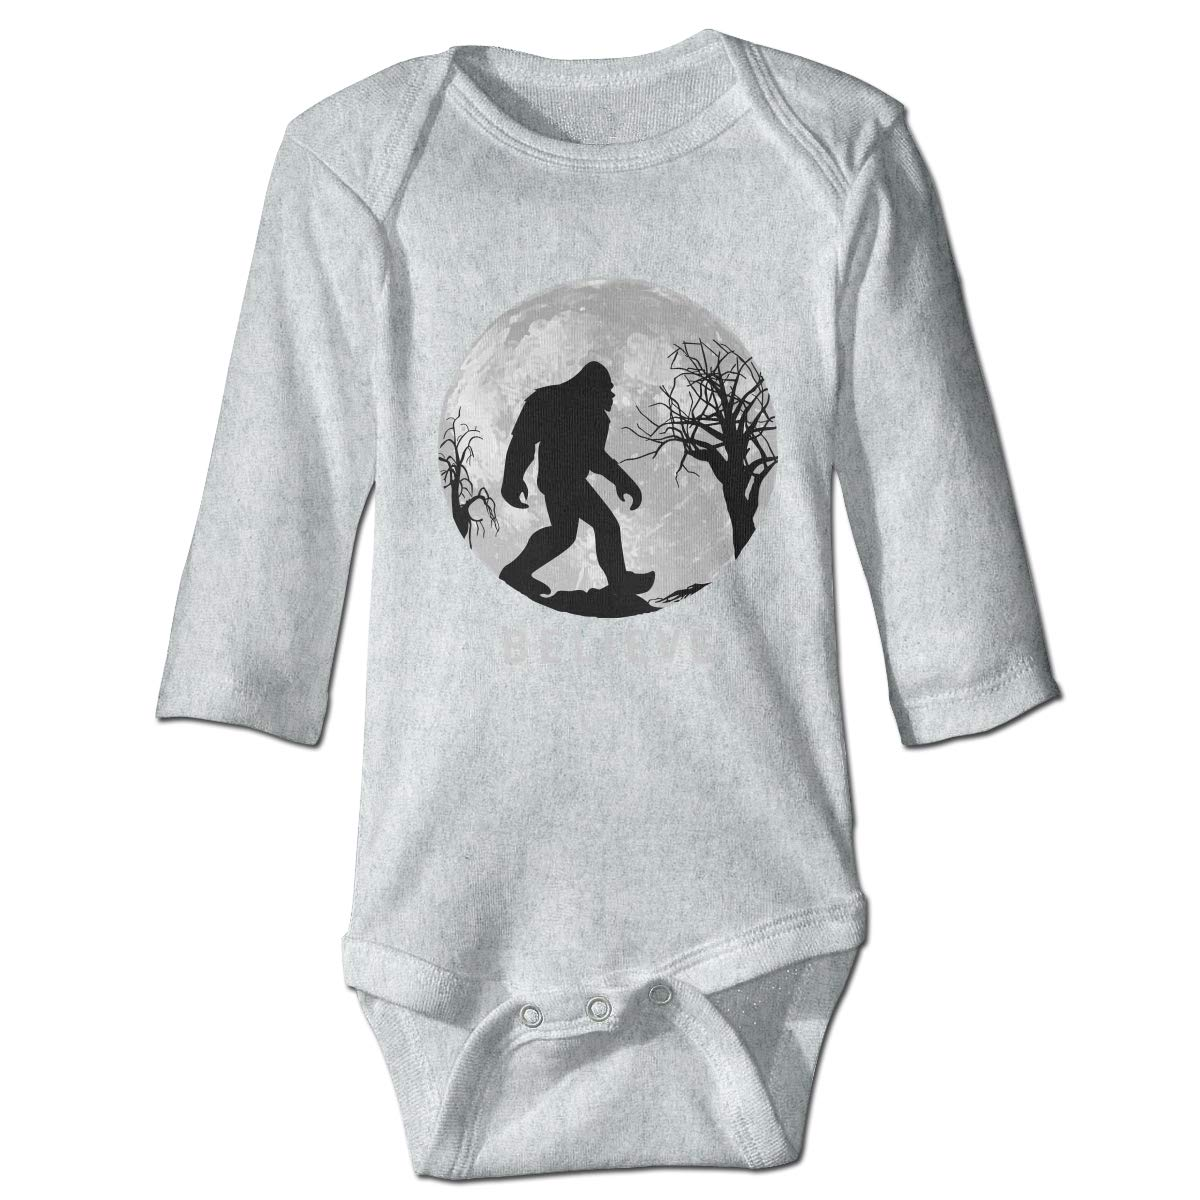 Dfenere Interstellar Orangutan Hip Hop Newborn Baby Long Sleeve Bodysuit Romper Infant Summer Clothing